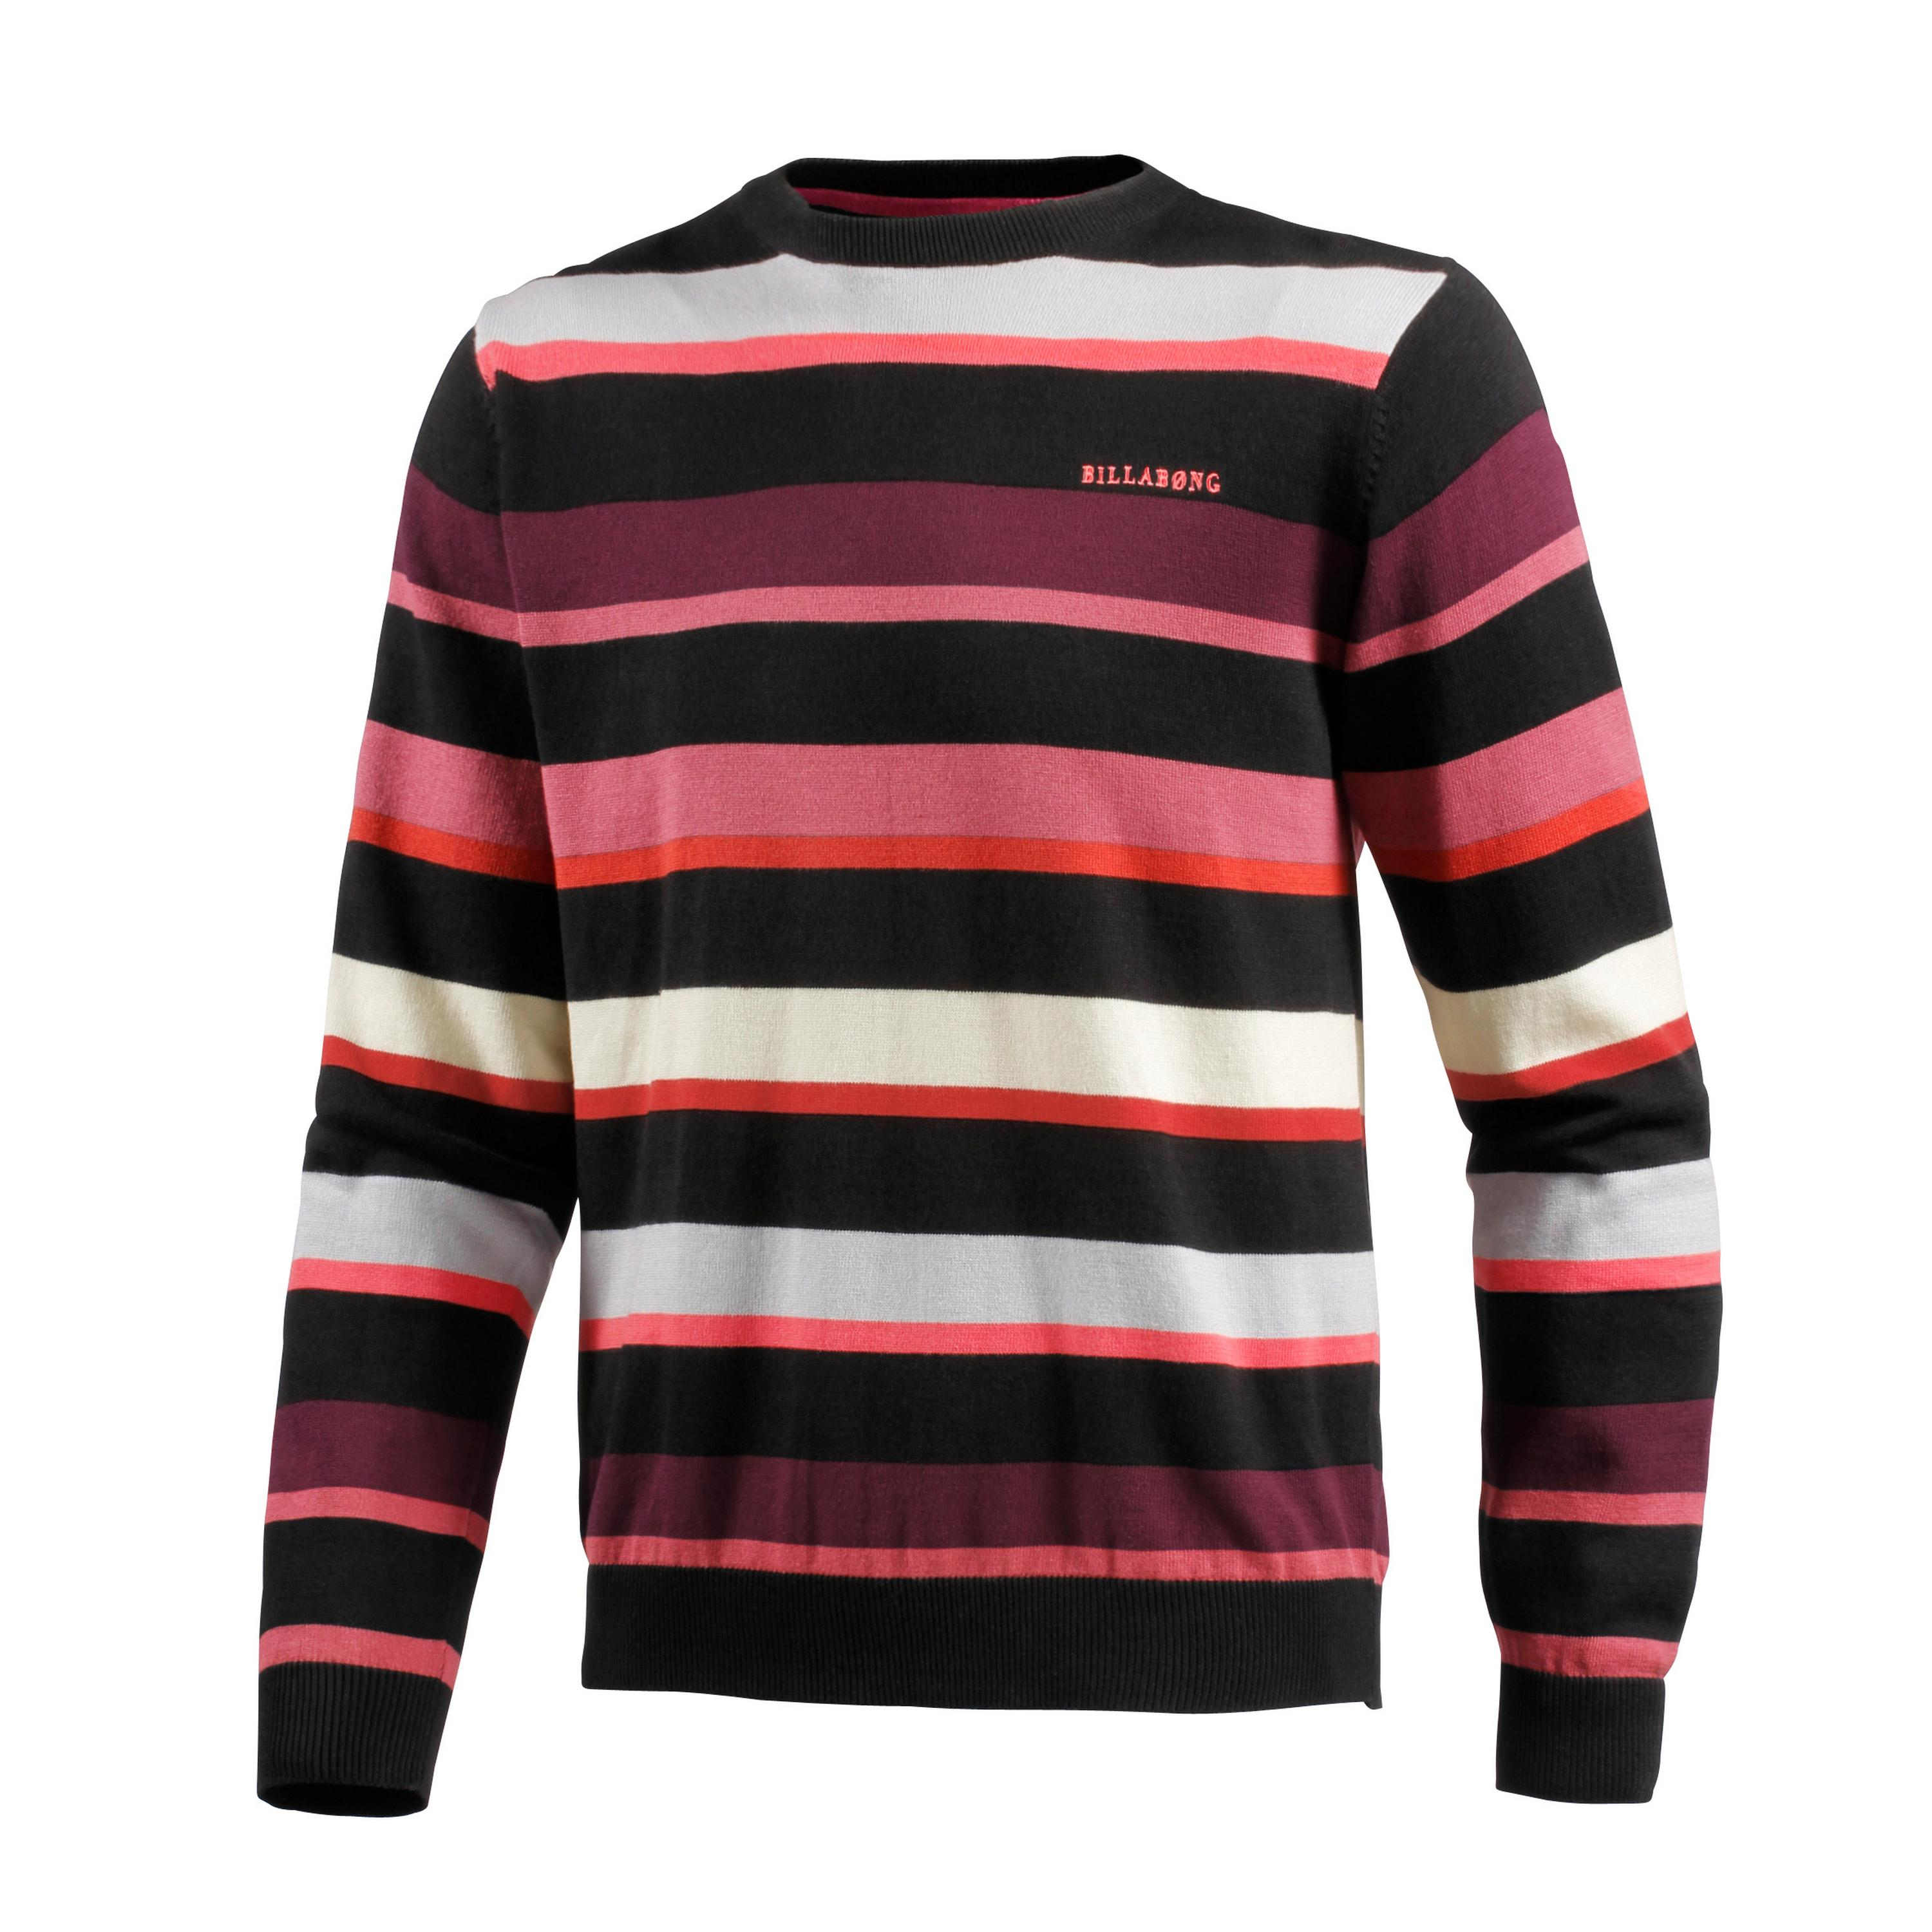 Billabong Travers Strickpullover Herren